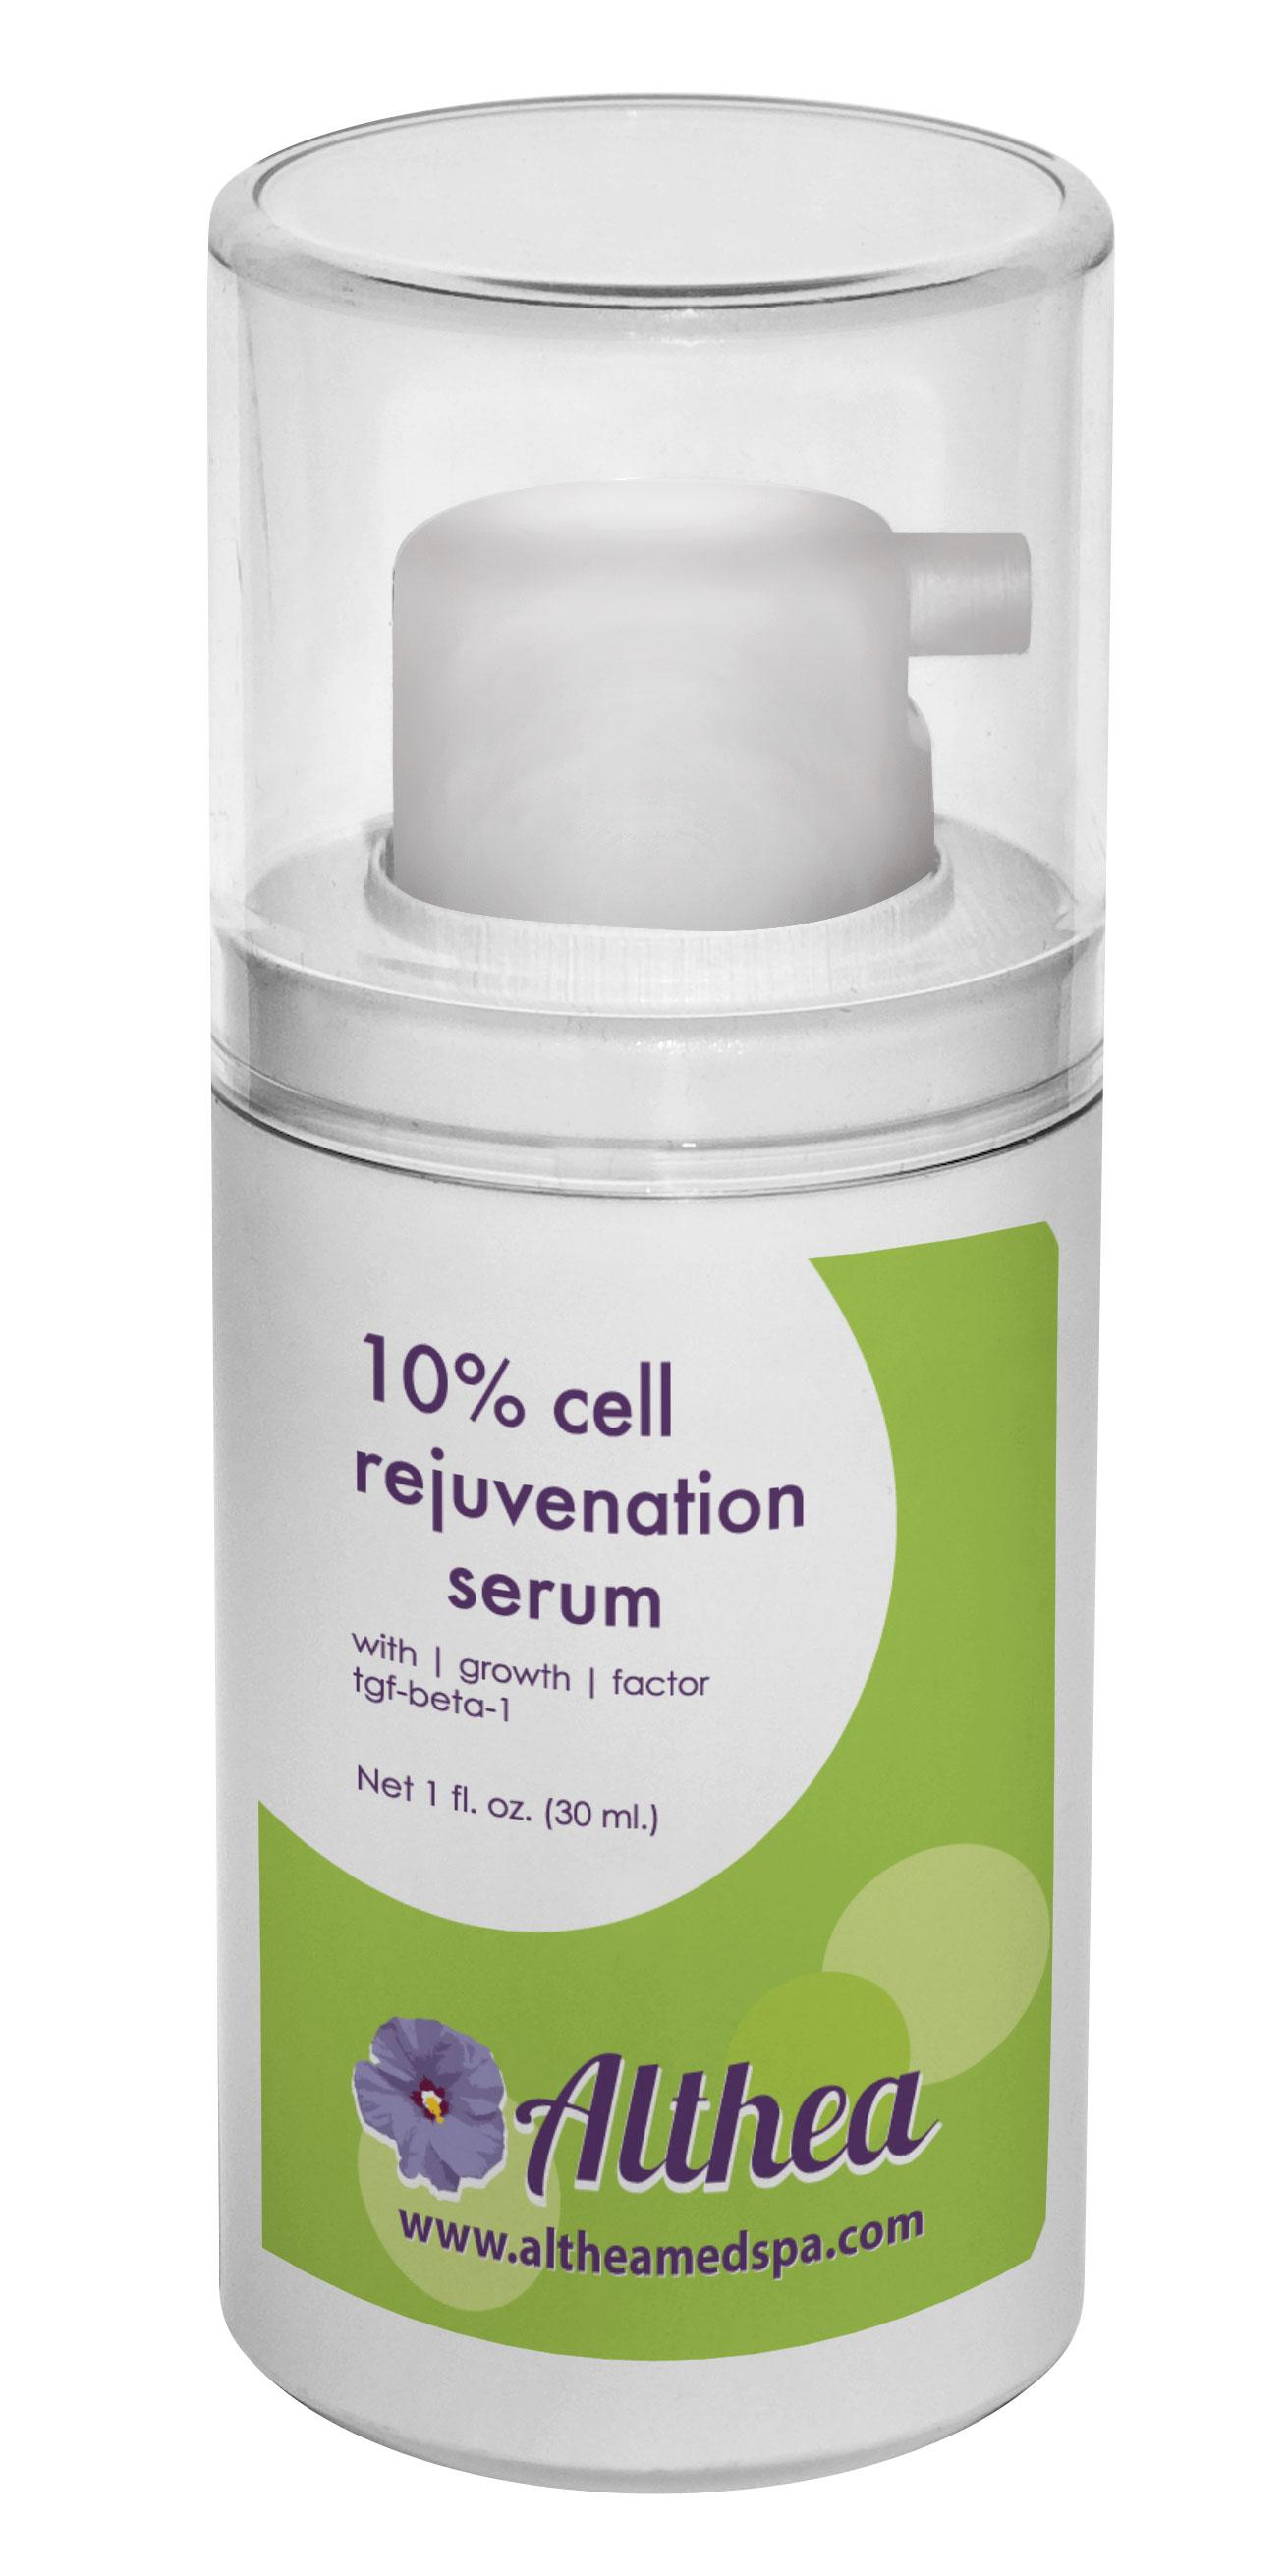 10% Cell Rejuvenation Serum